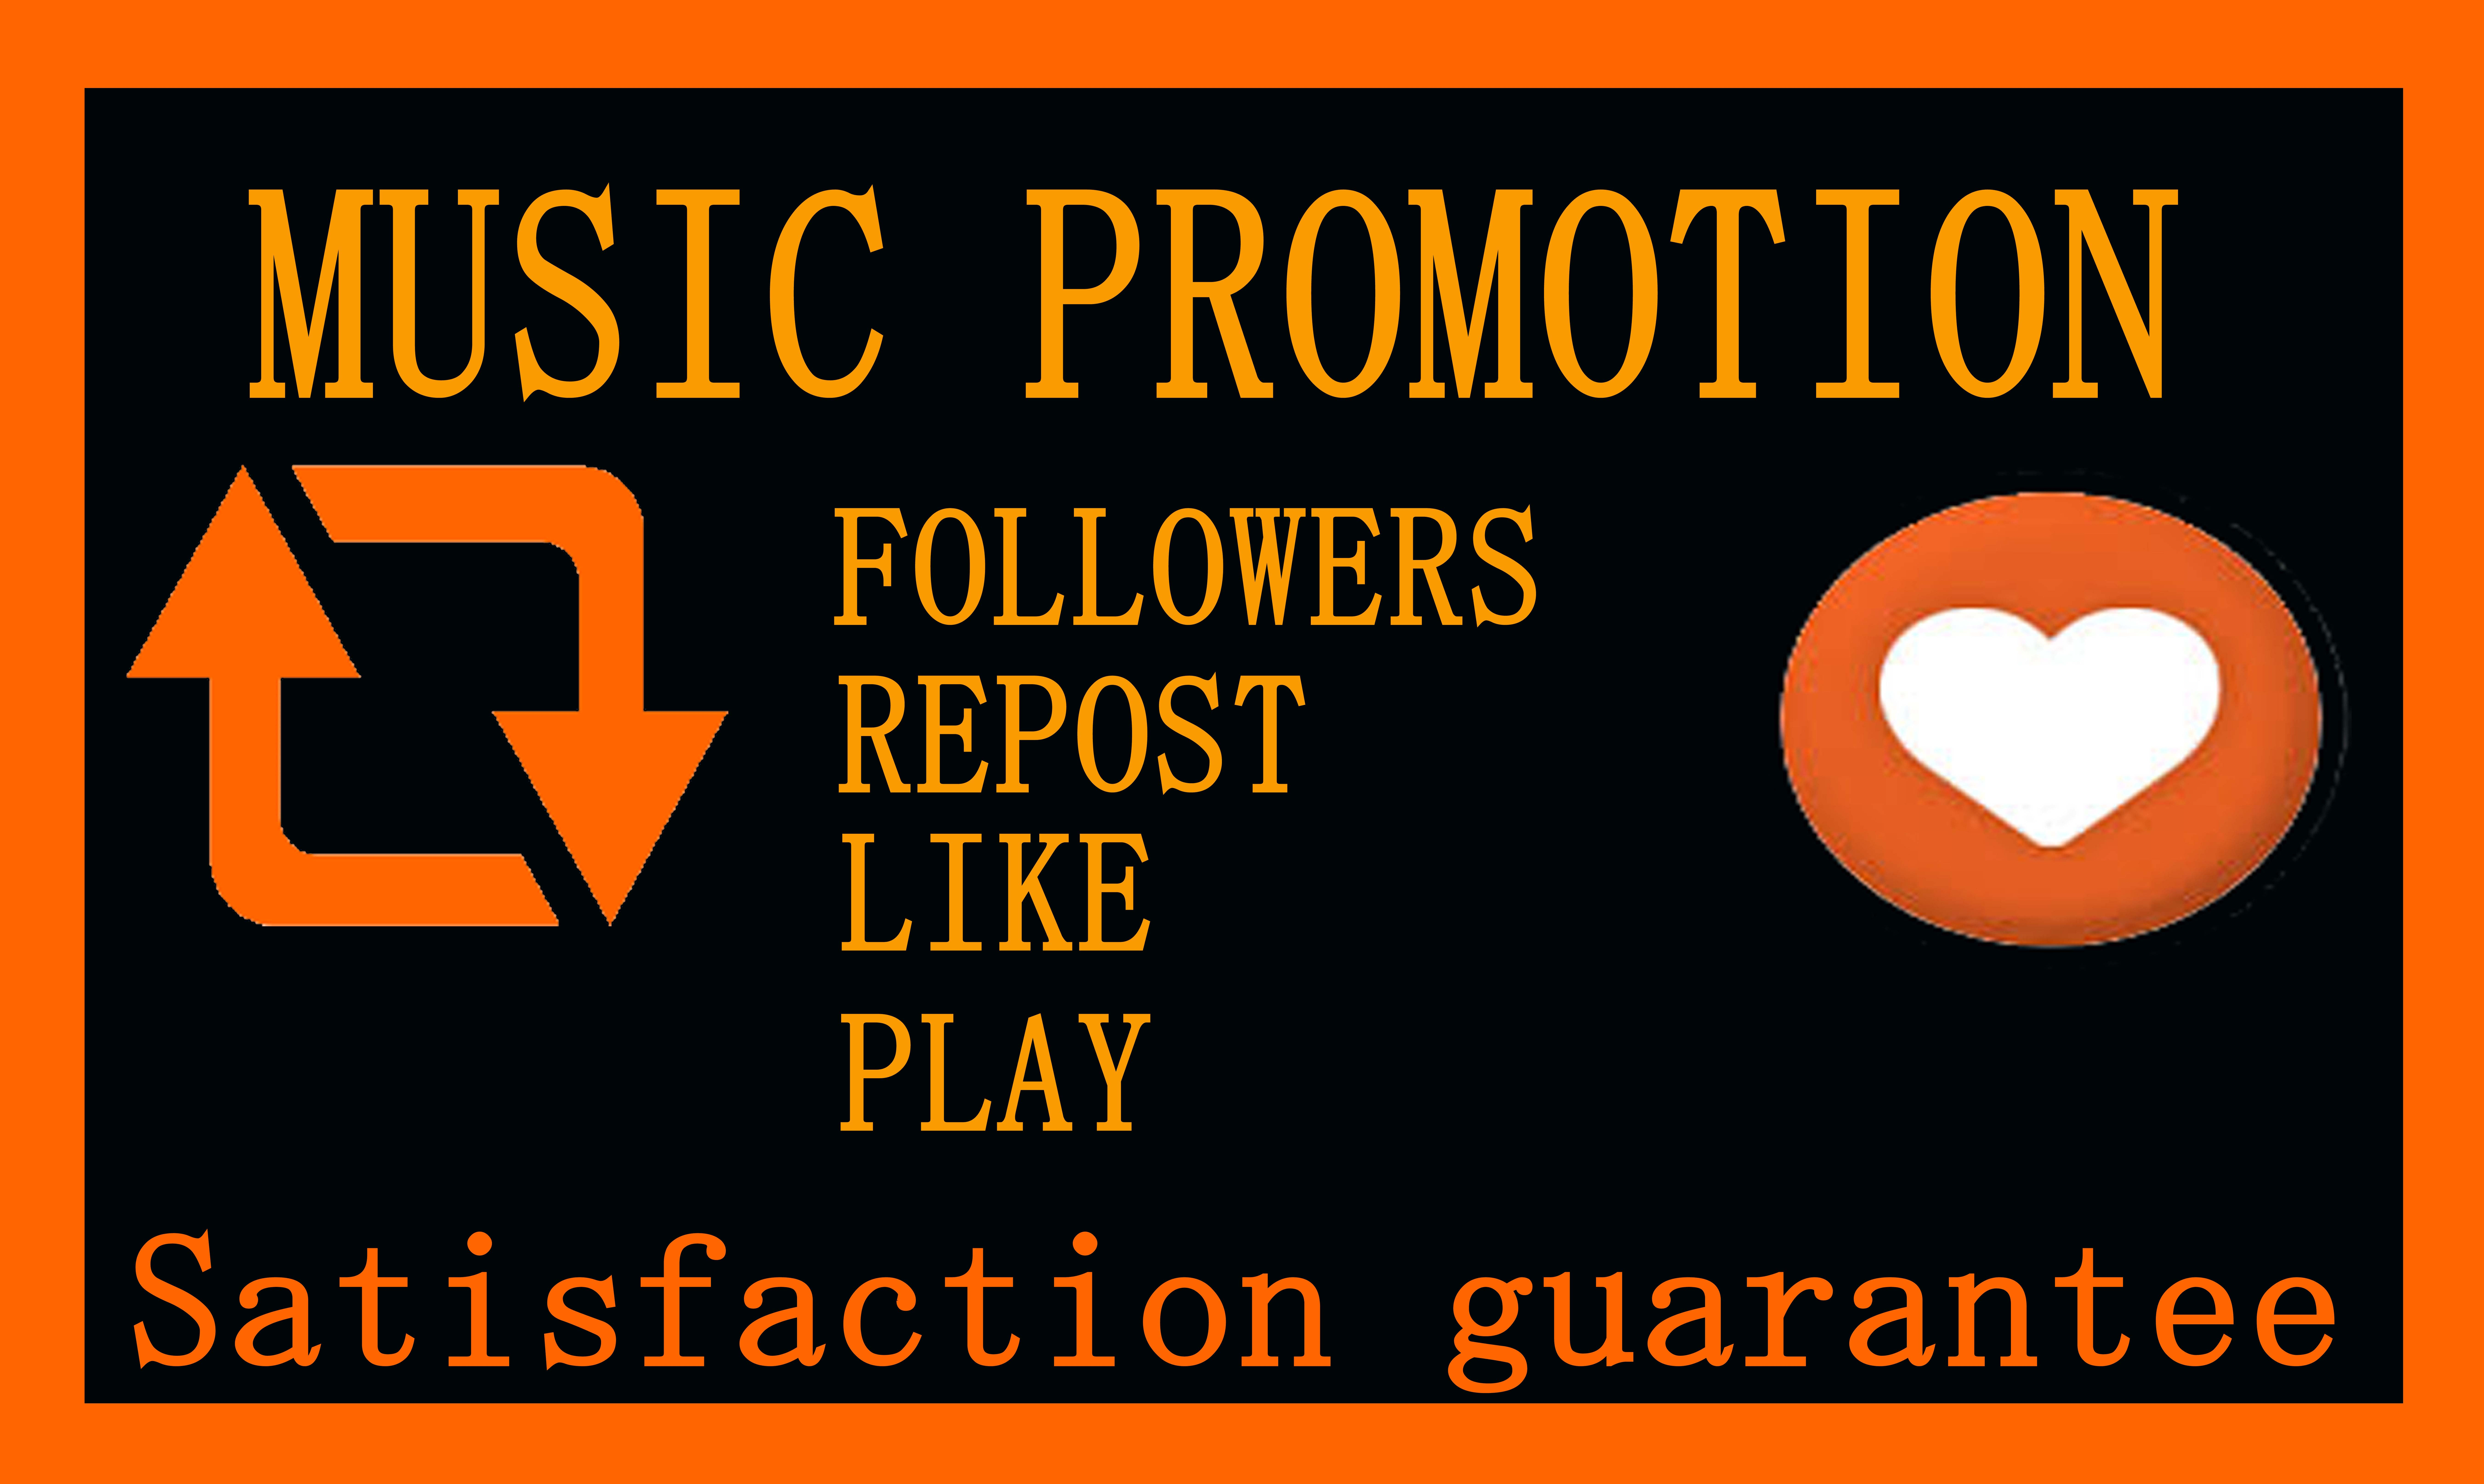 BEST MUSIC 3 MILLIONS PLAY PROMOTION